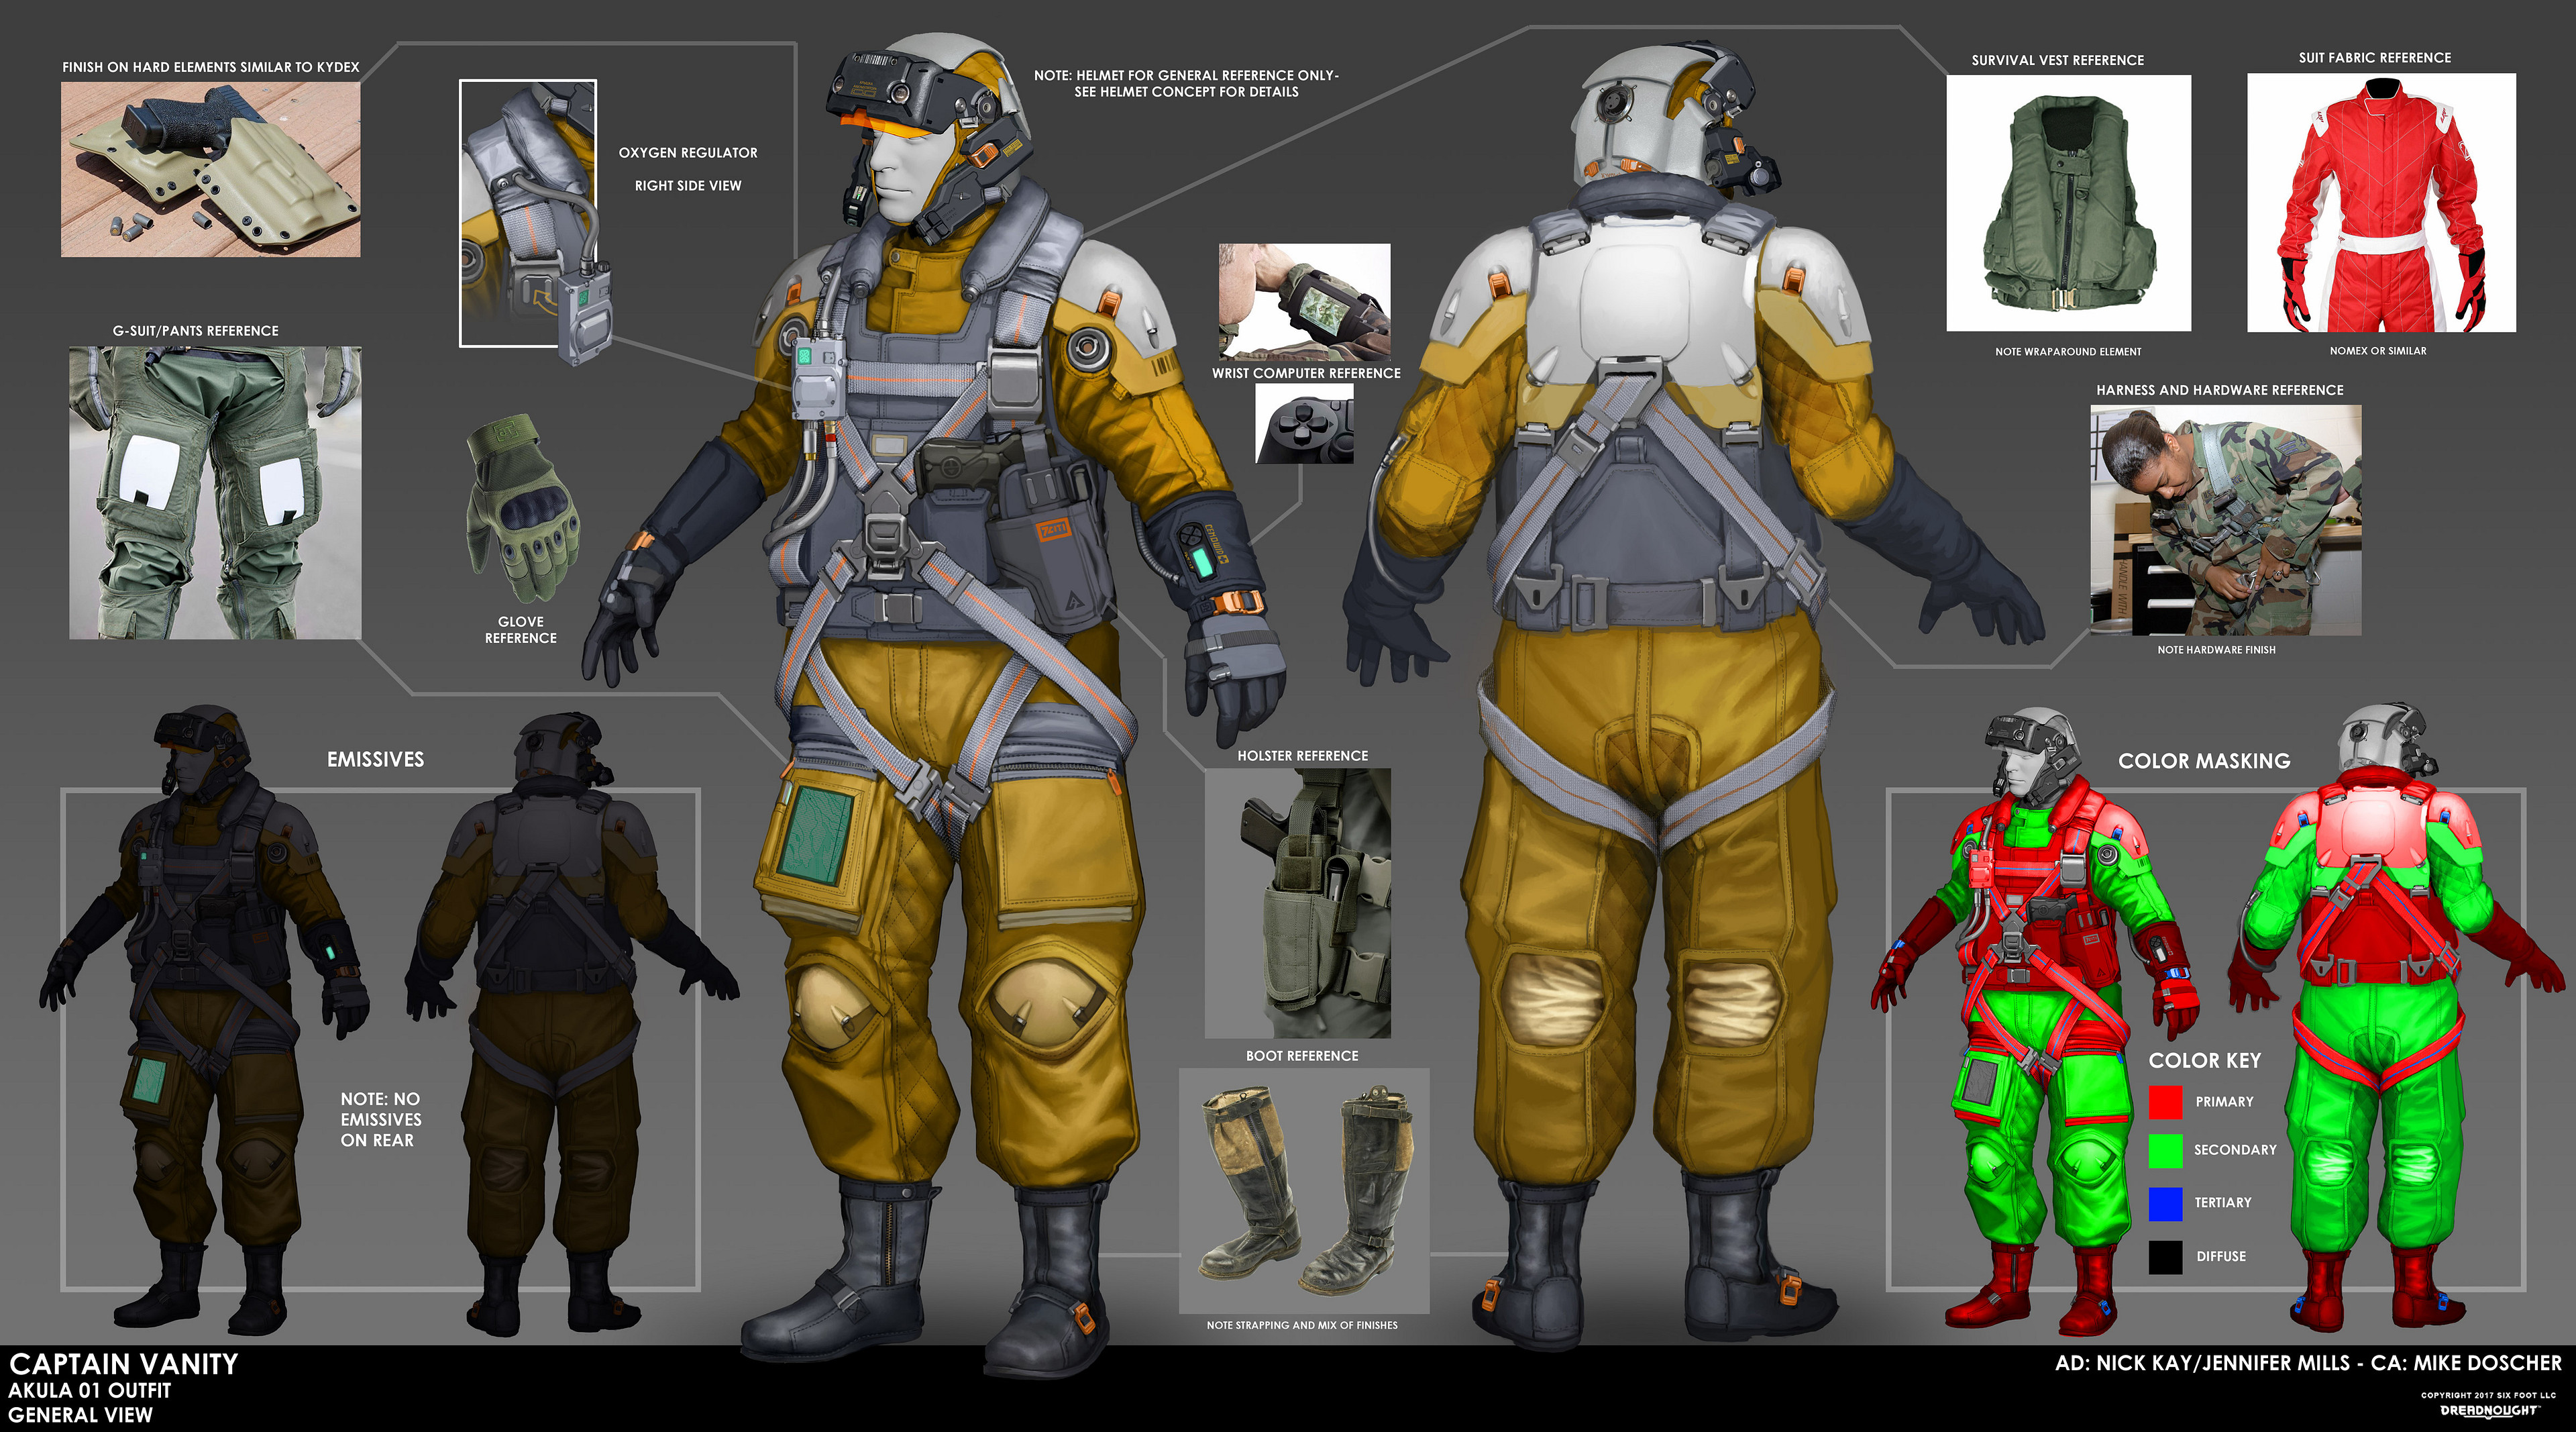 The helmet was deemed sufficiently promising that an entire character outfit was created to match the style and fit in with the Akula faction in Dreadnought.